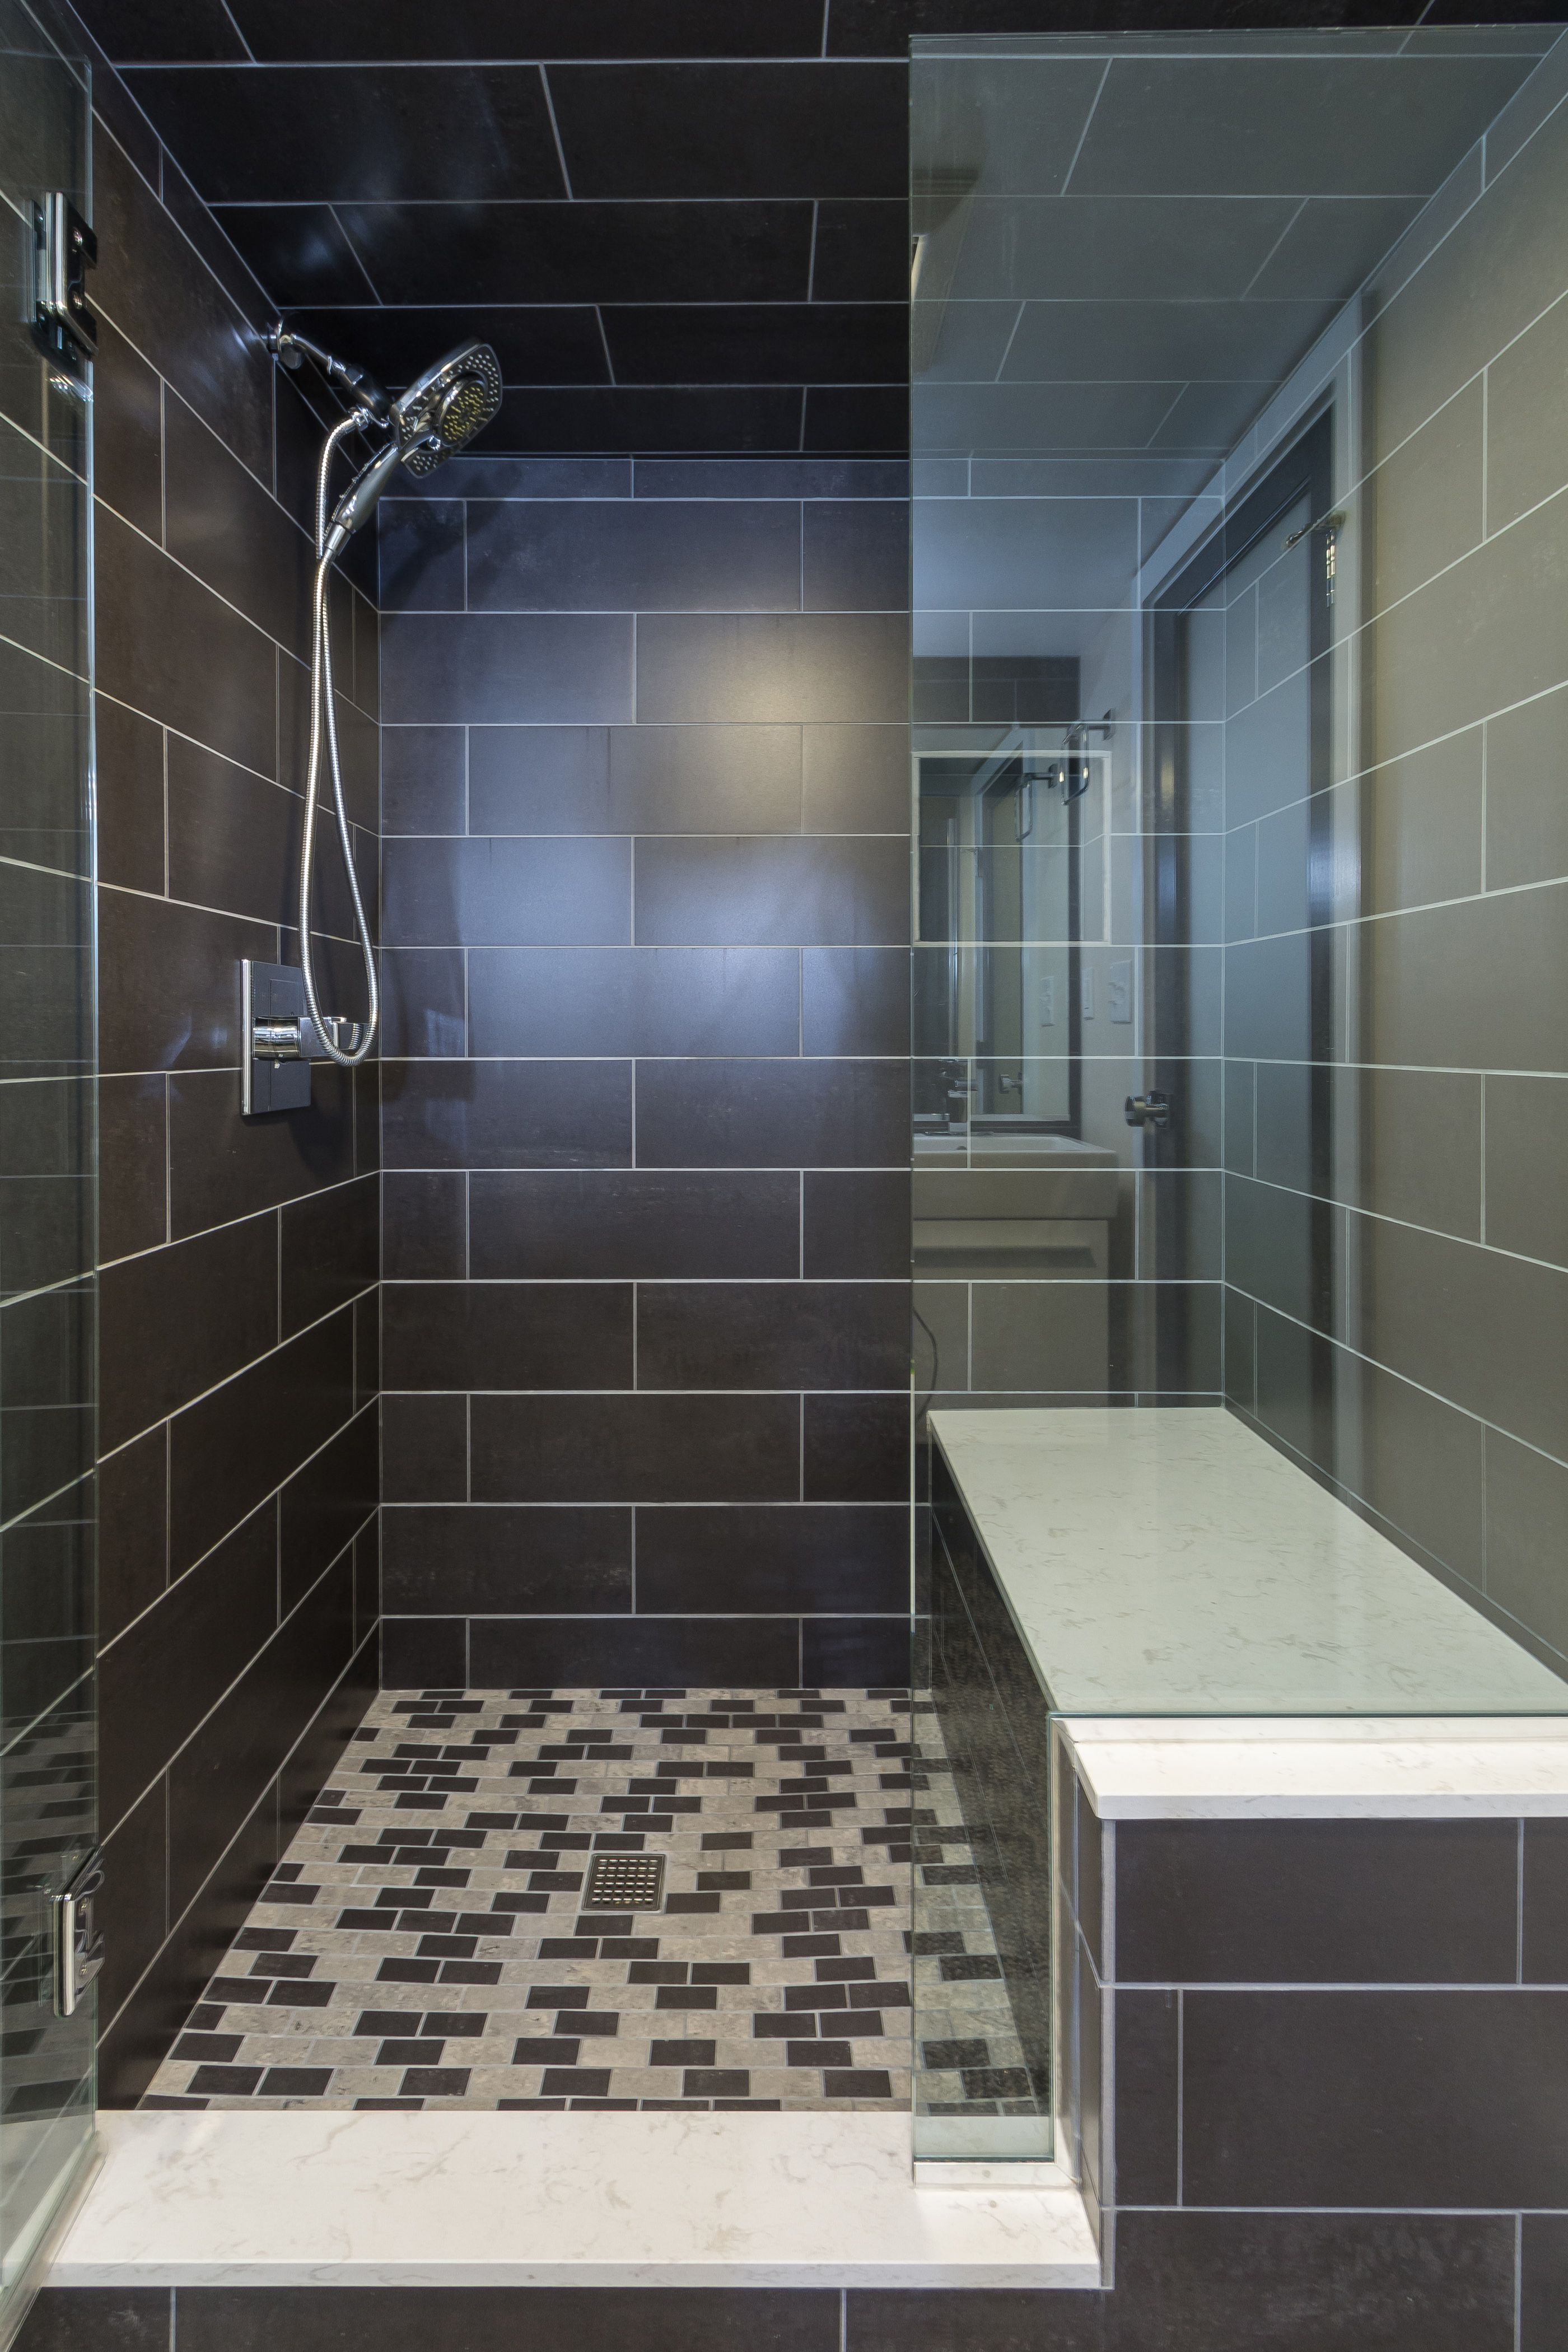 Small Bathroom Ideas Low Ceiling basement bath remodel in a space challengedlow ceilings